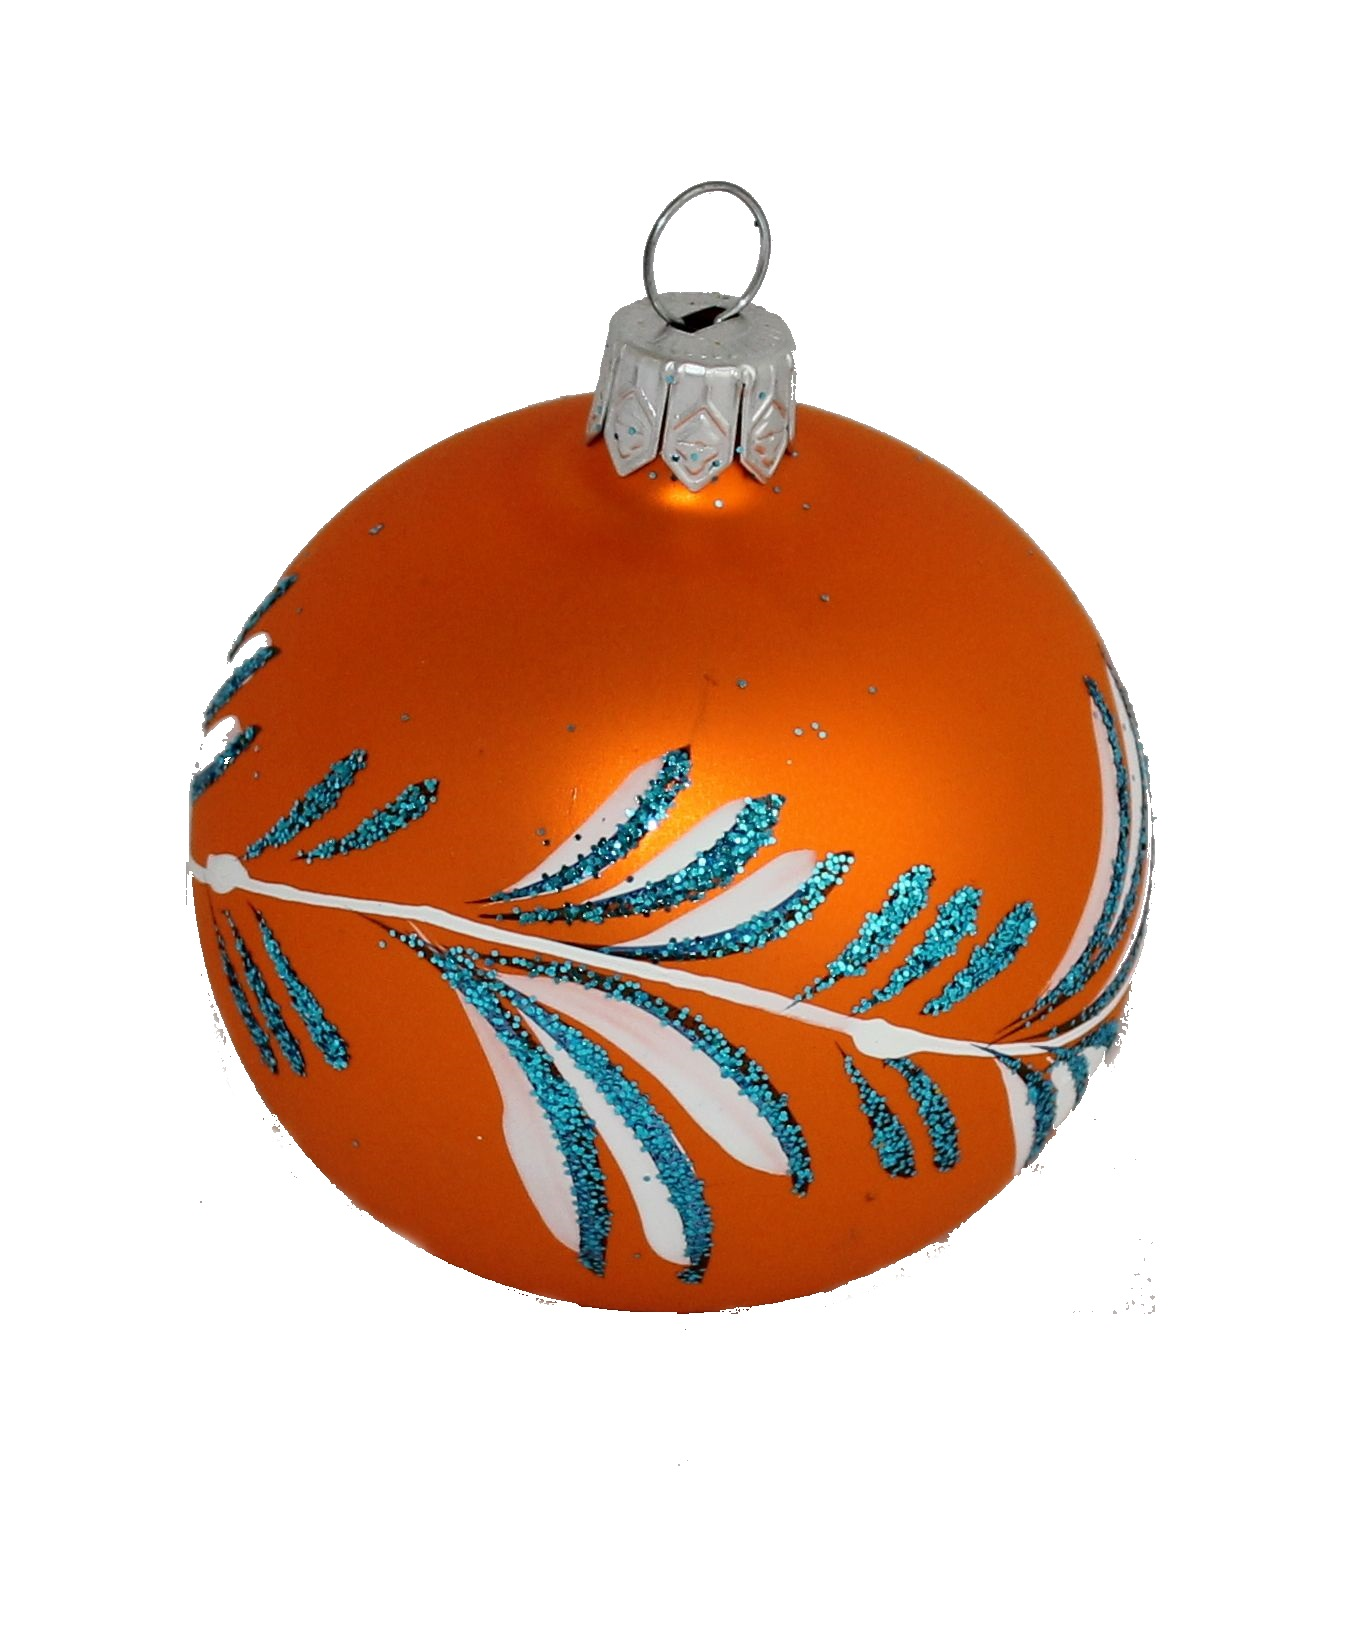 Christmas Decorations With Orange: Glass Christmas Ball, Orange- Christmas Ornament